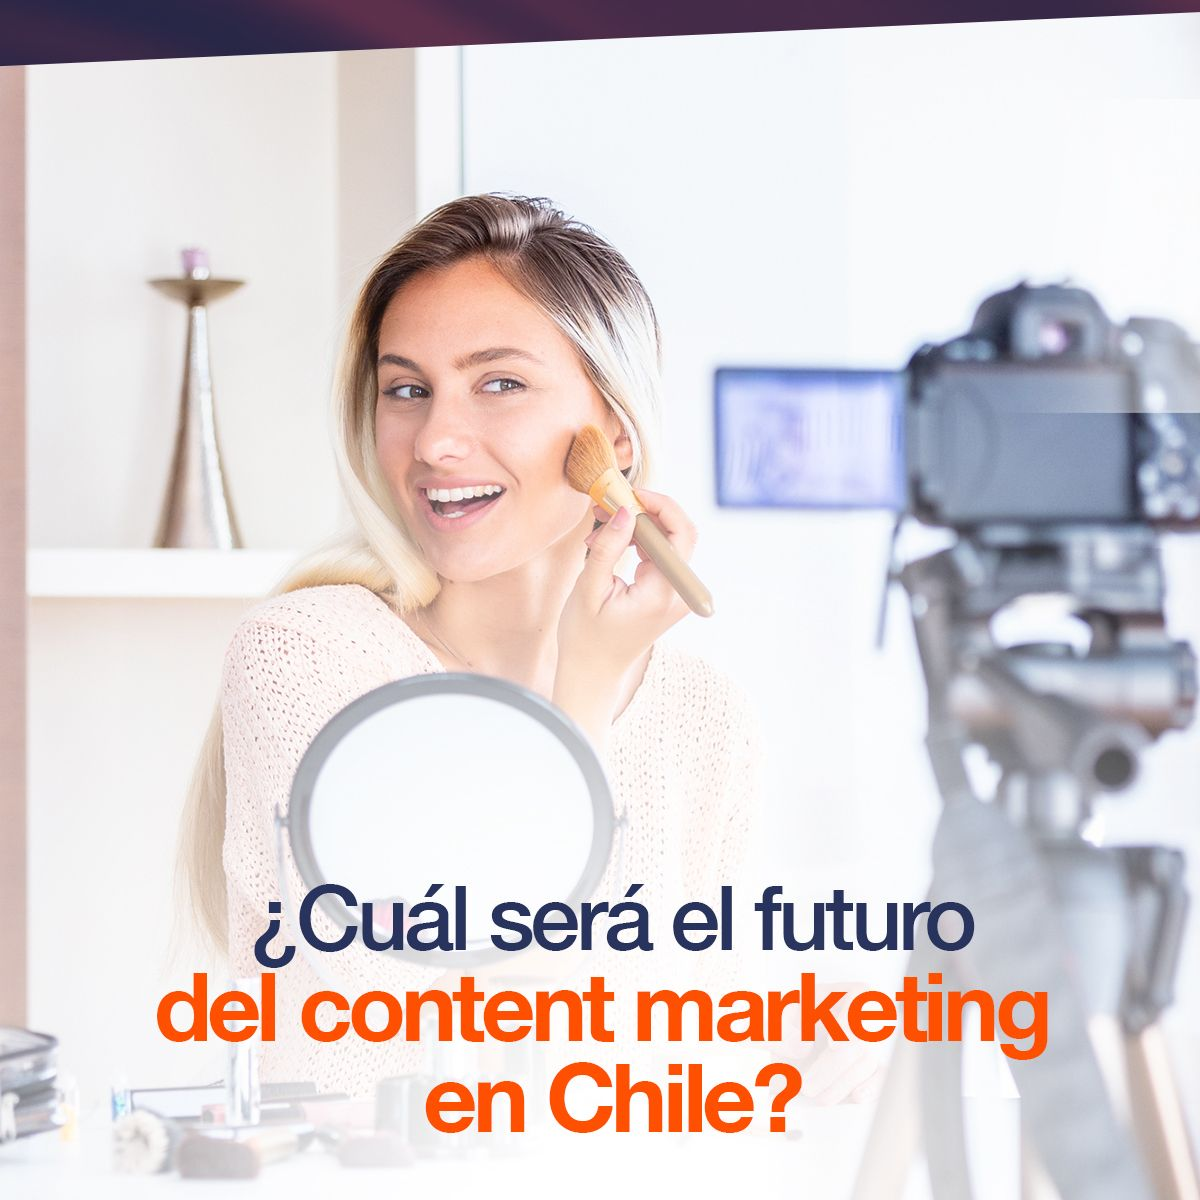 ¿Cuál será el futuro del content marketing en Chile?